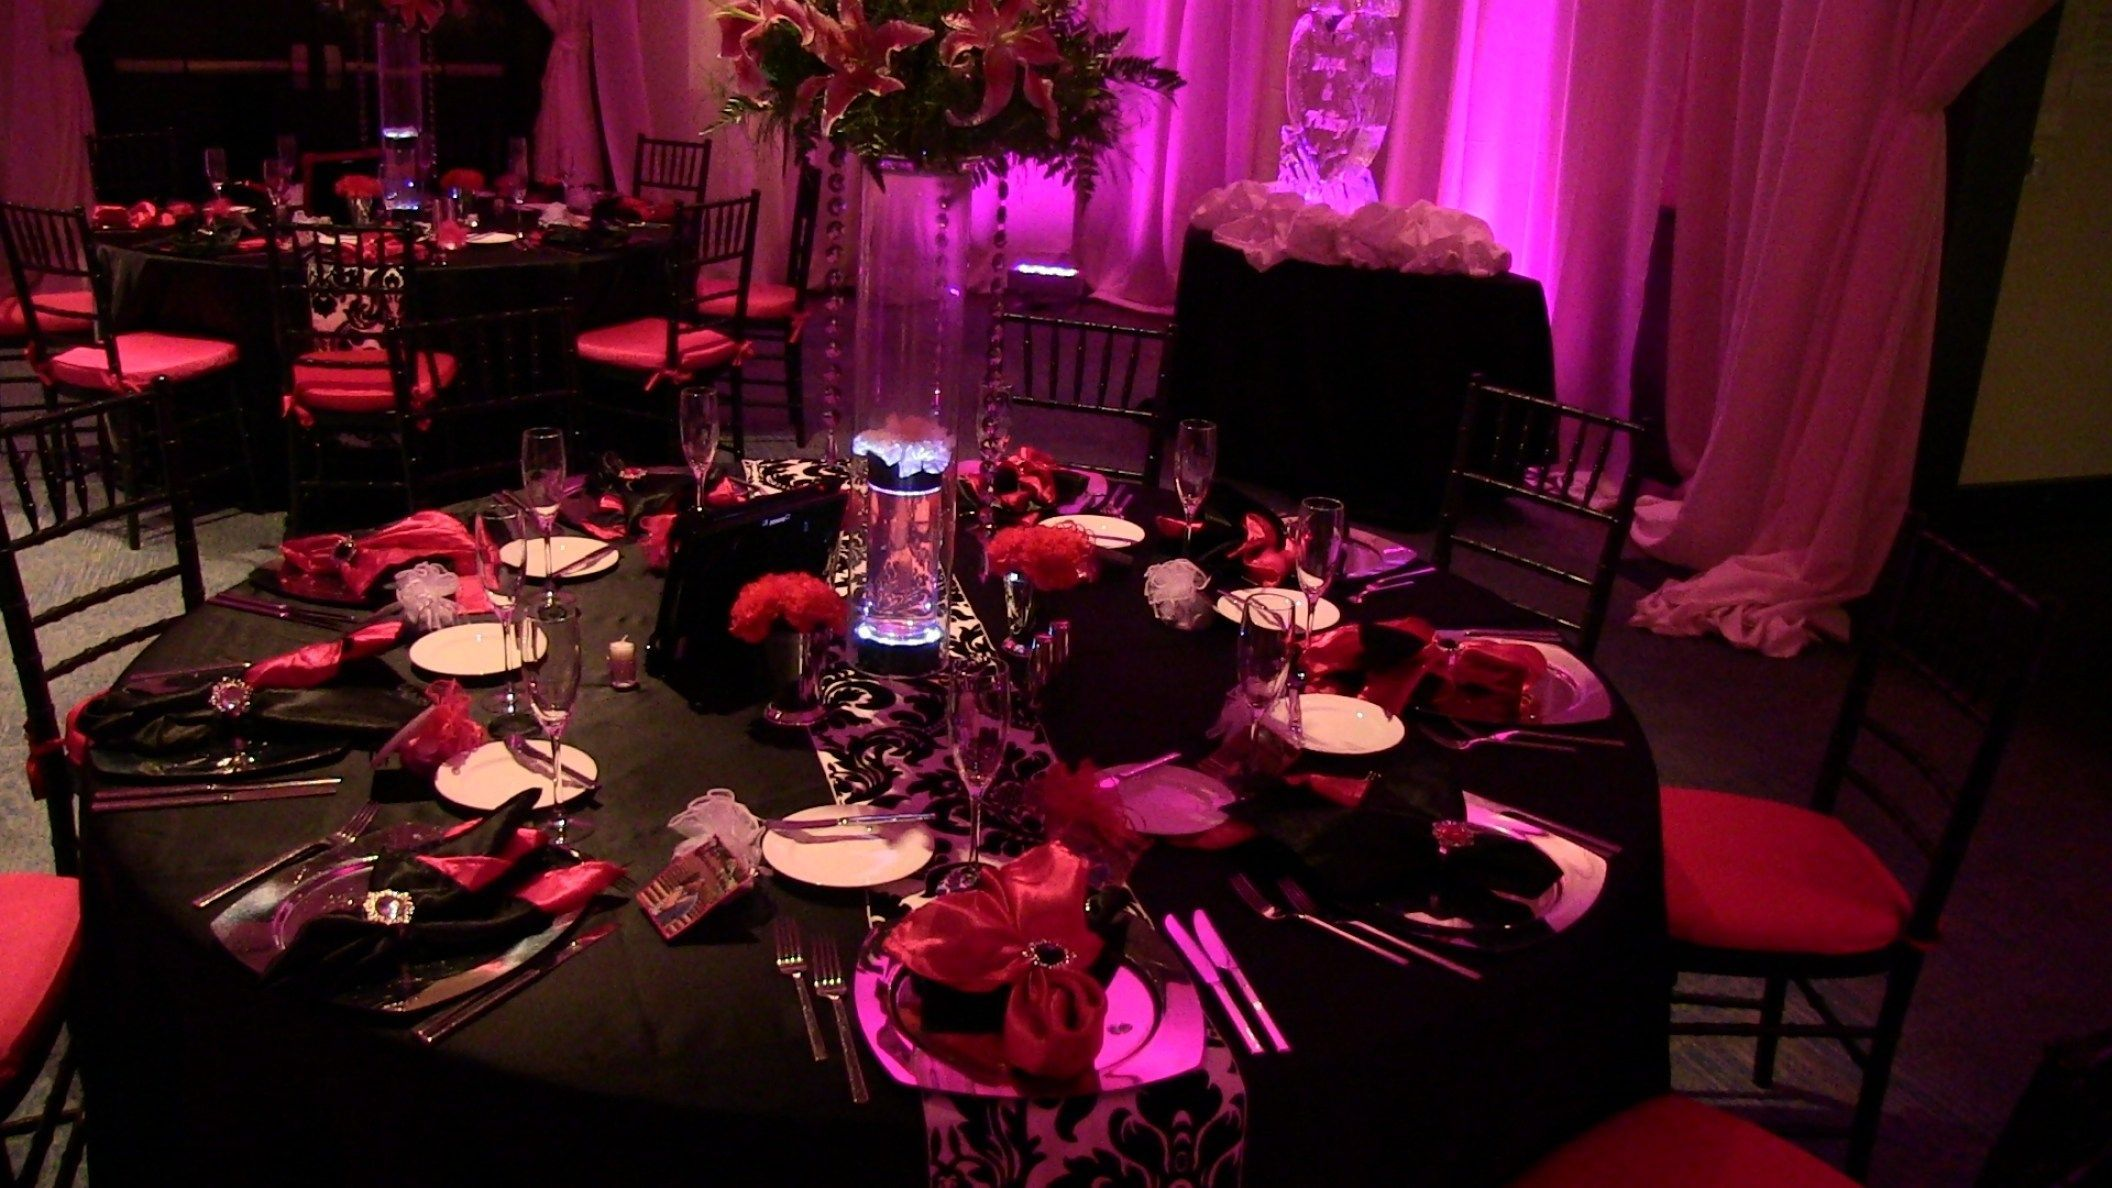 Red and black wedding decor   Pink And Black Wedding Decorations For The Reception  Pink